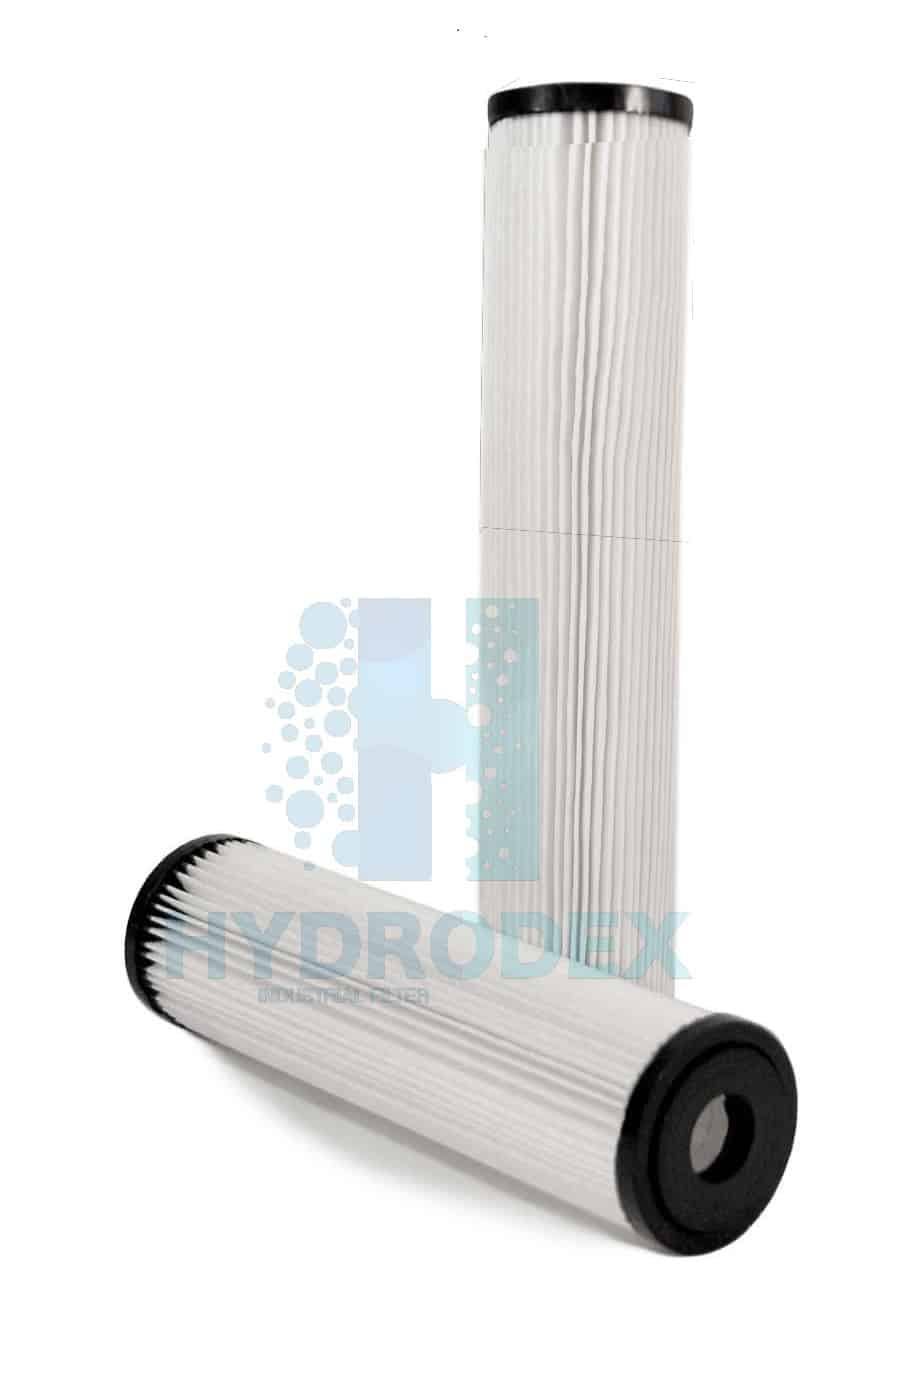 Hydrodex Pleated filter Cartridge sediment